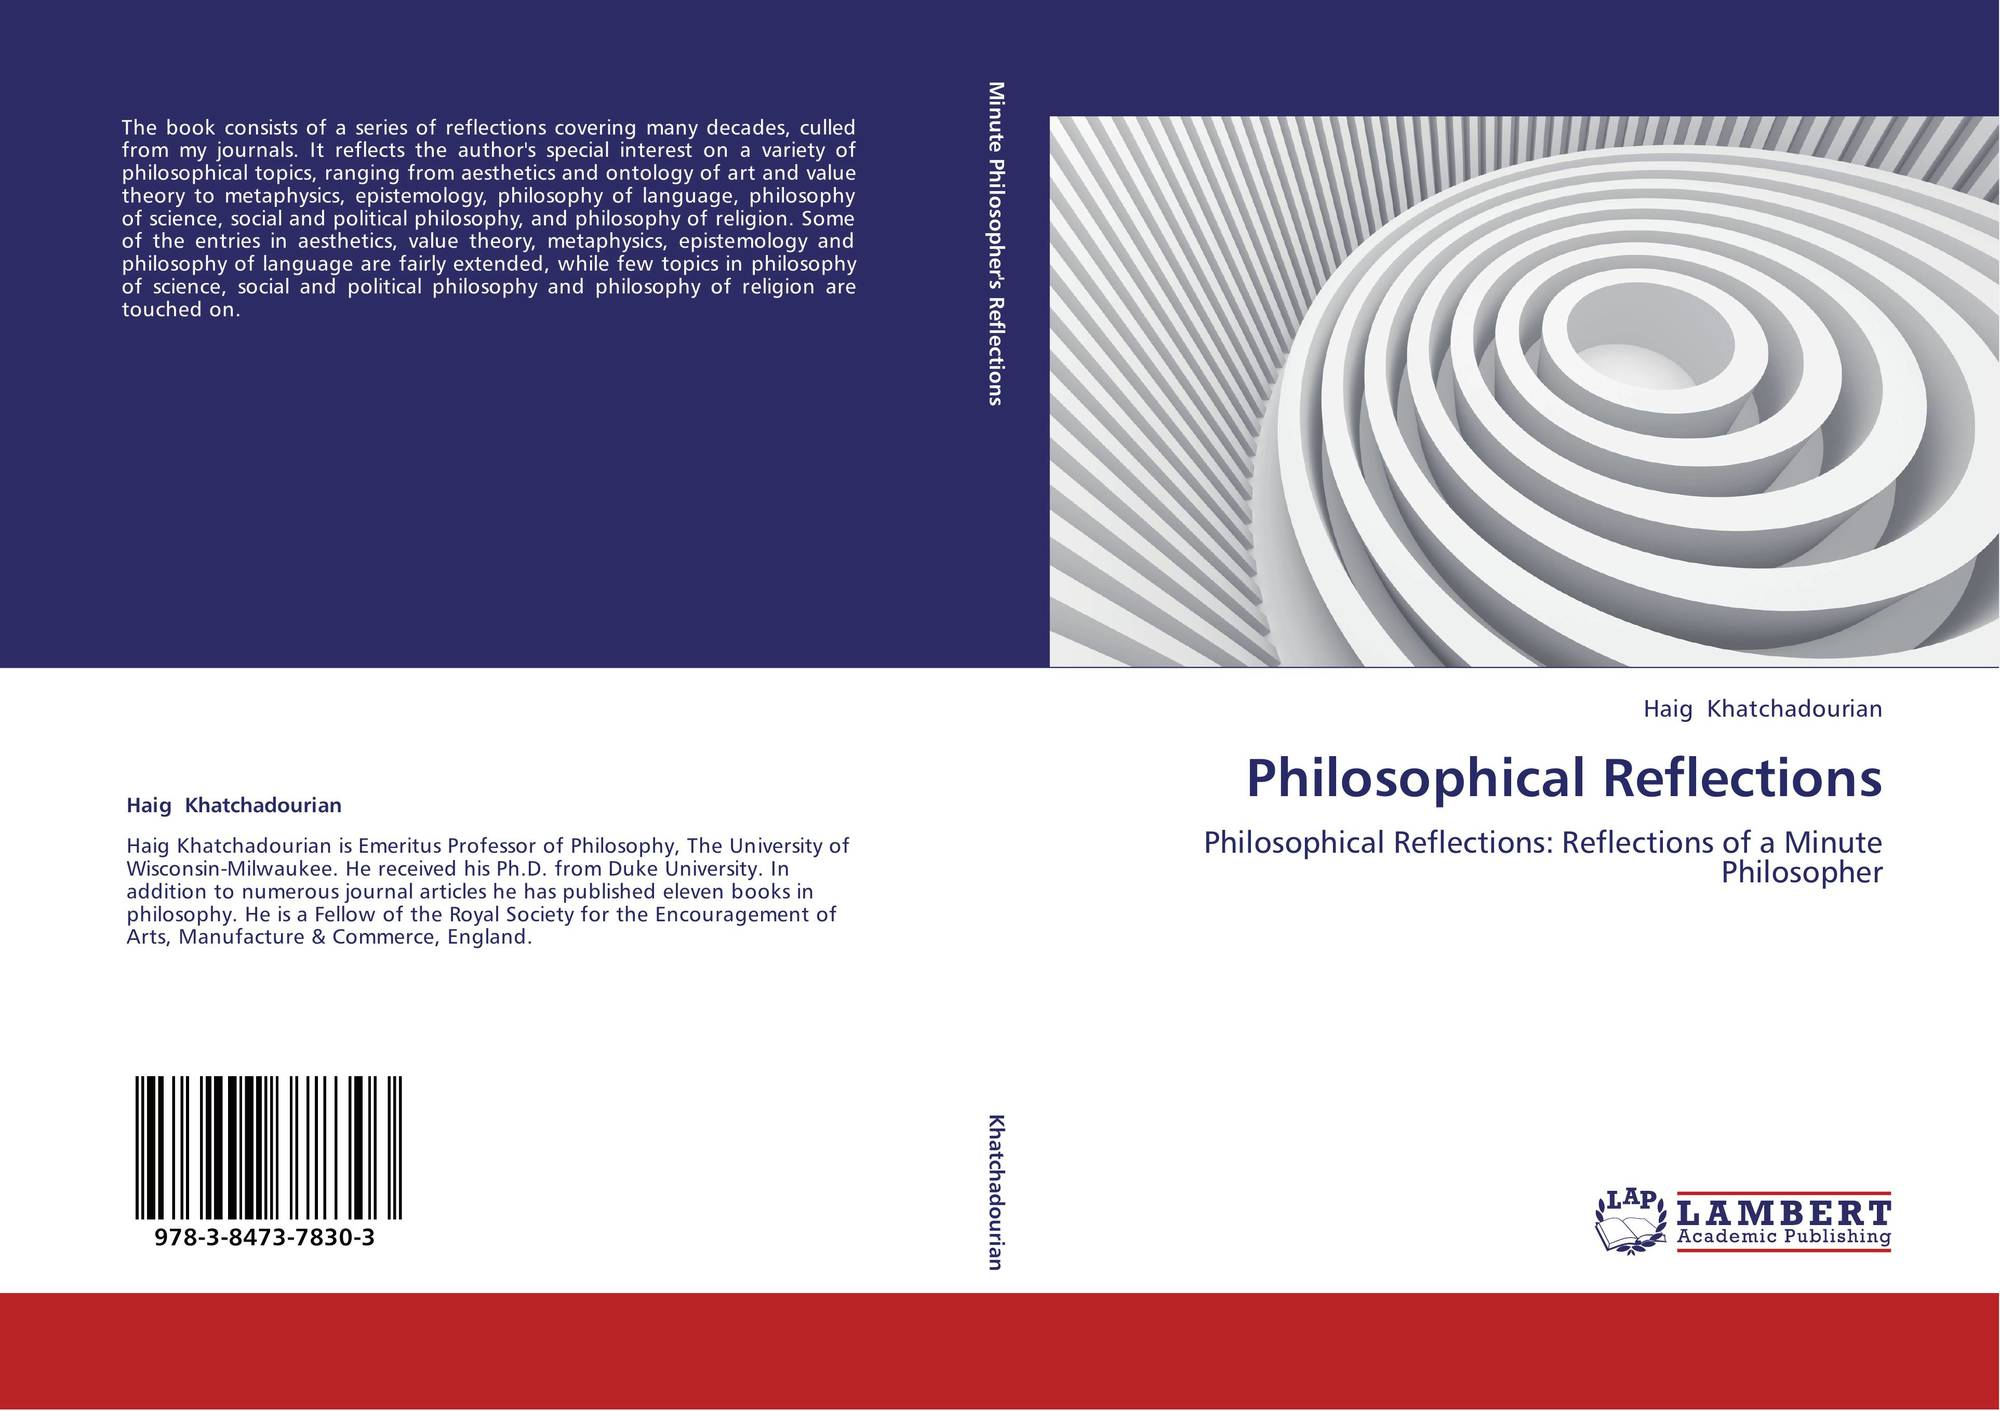 reflection paper philosophy religion continous conflict For example, writing a reflective essay for a college course and an academic audience will have slight changes in how the essay is organized from writing a reflective essay for a magazine or a collection of essays, which has a broader audience, without people who have necessarily gone to college however, some major elements go into a typical.